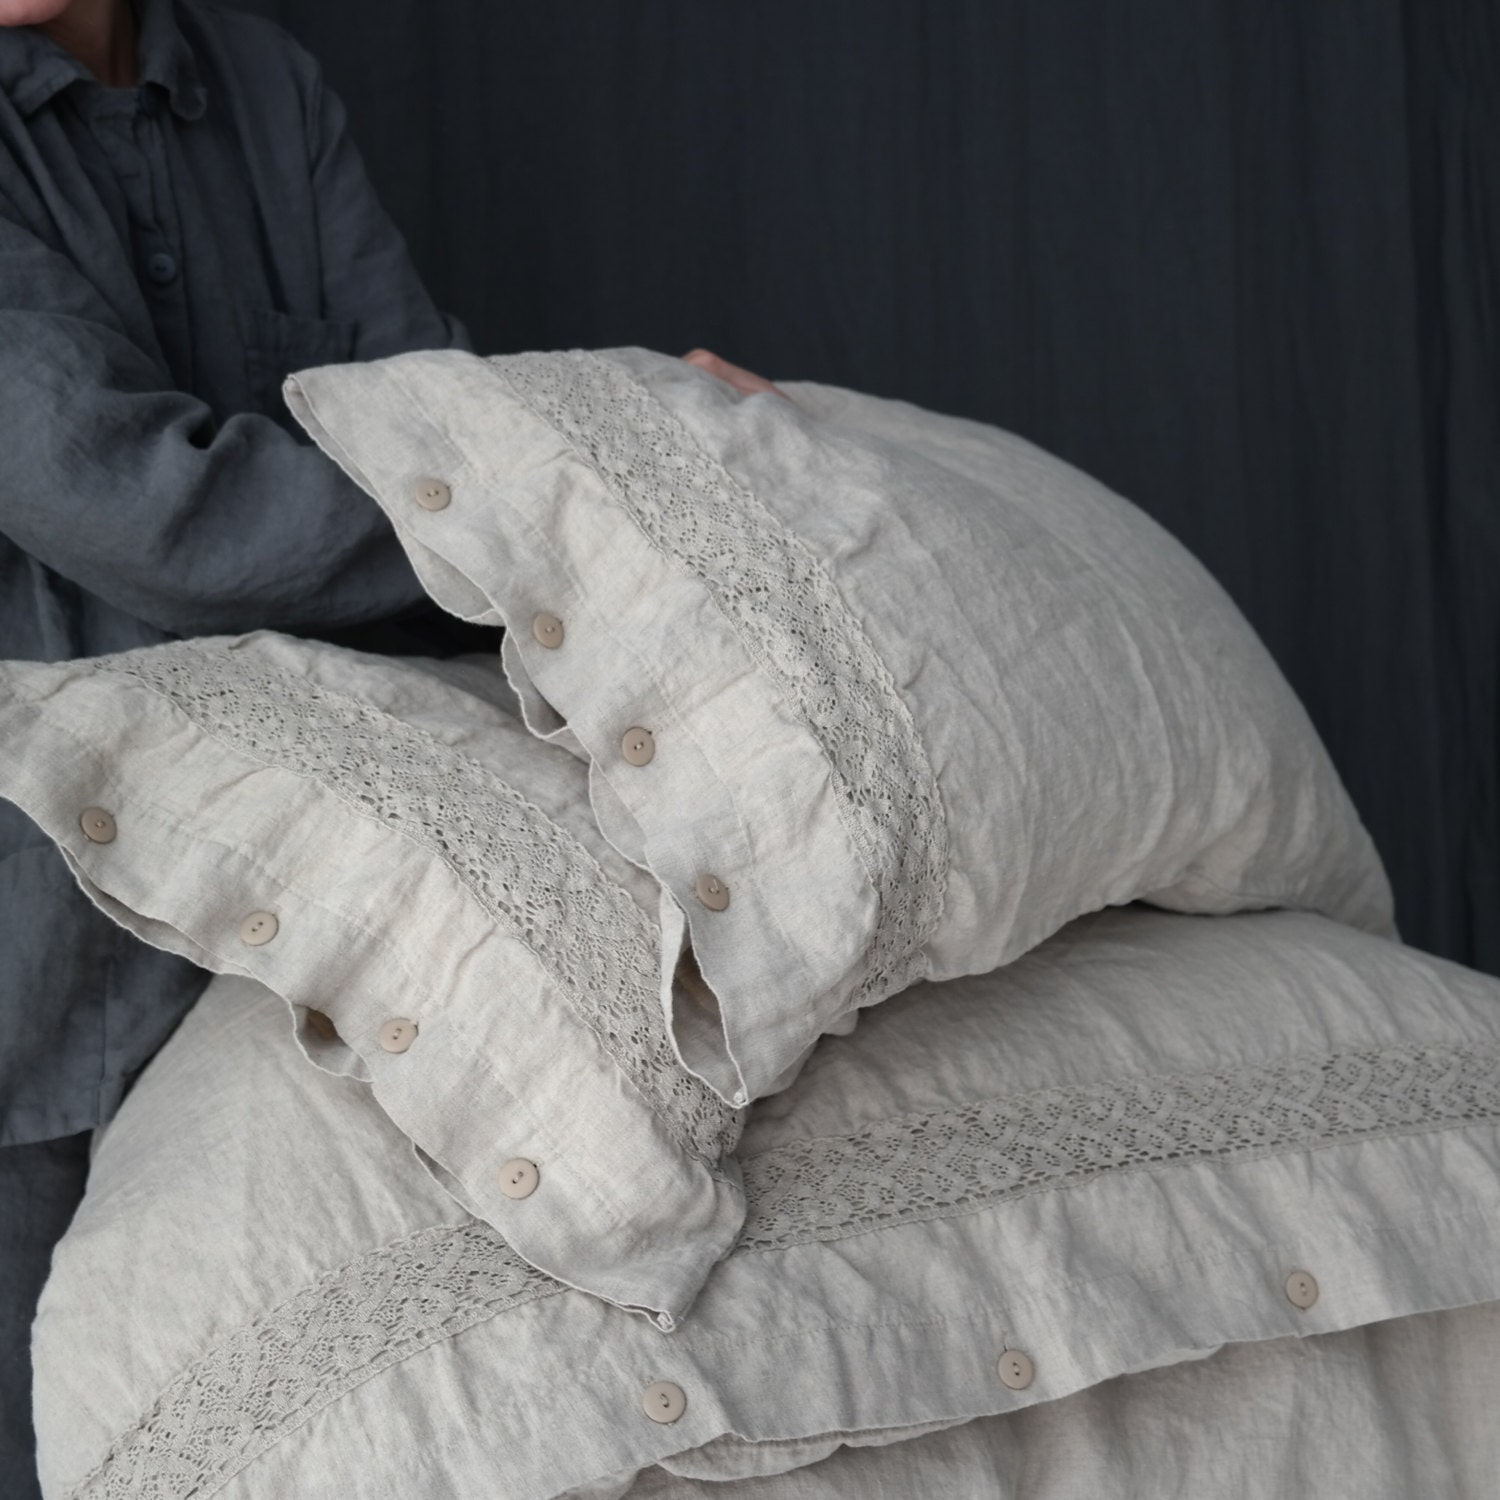 LINEN DUVET COVER set of duvet cover and pillowcases with lace. Natural  French linen bedding set. Made by MOOshop.*1